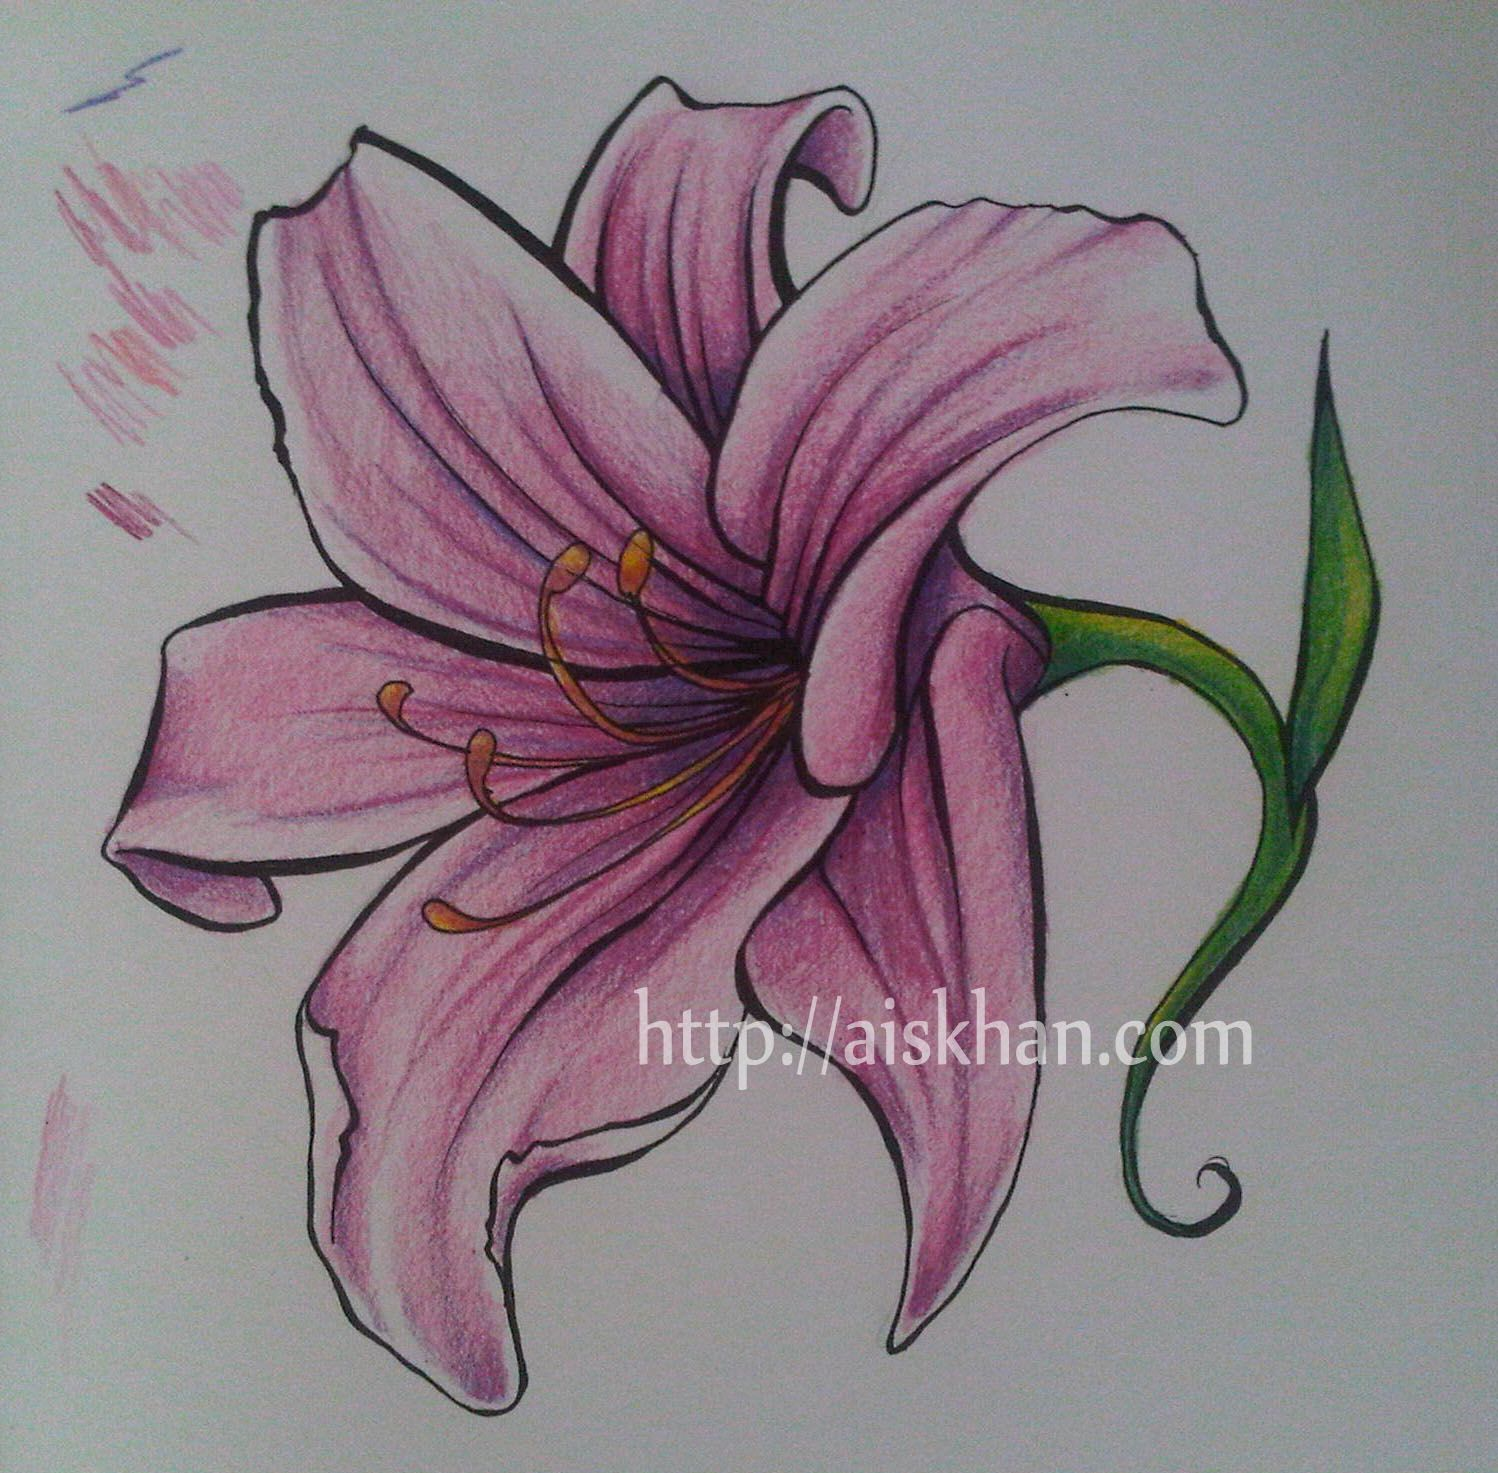 Free download lily flower tattoo drawing tattoo design did lily free download lily flower tattoo drawing tattoo design did izmirmasajfo